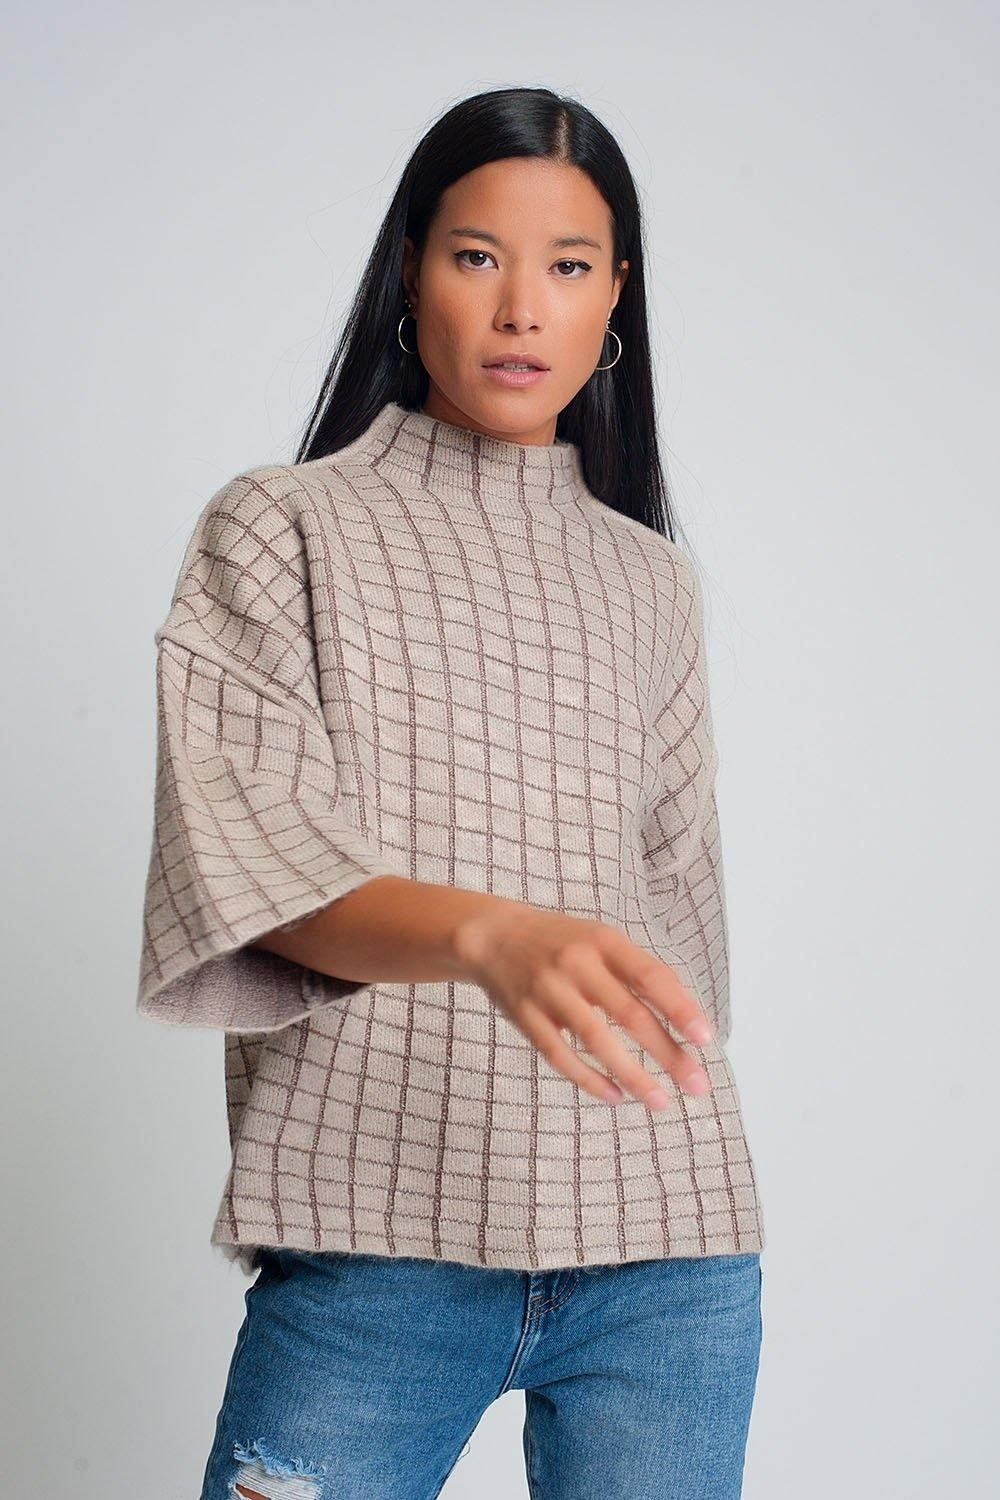 Q2 Fine knit sweater with high neck in beige check pattern